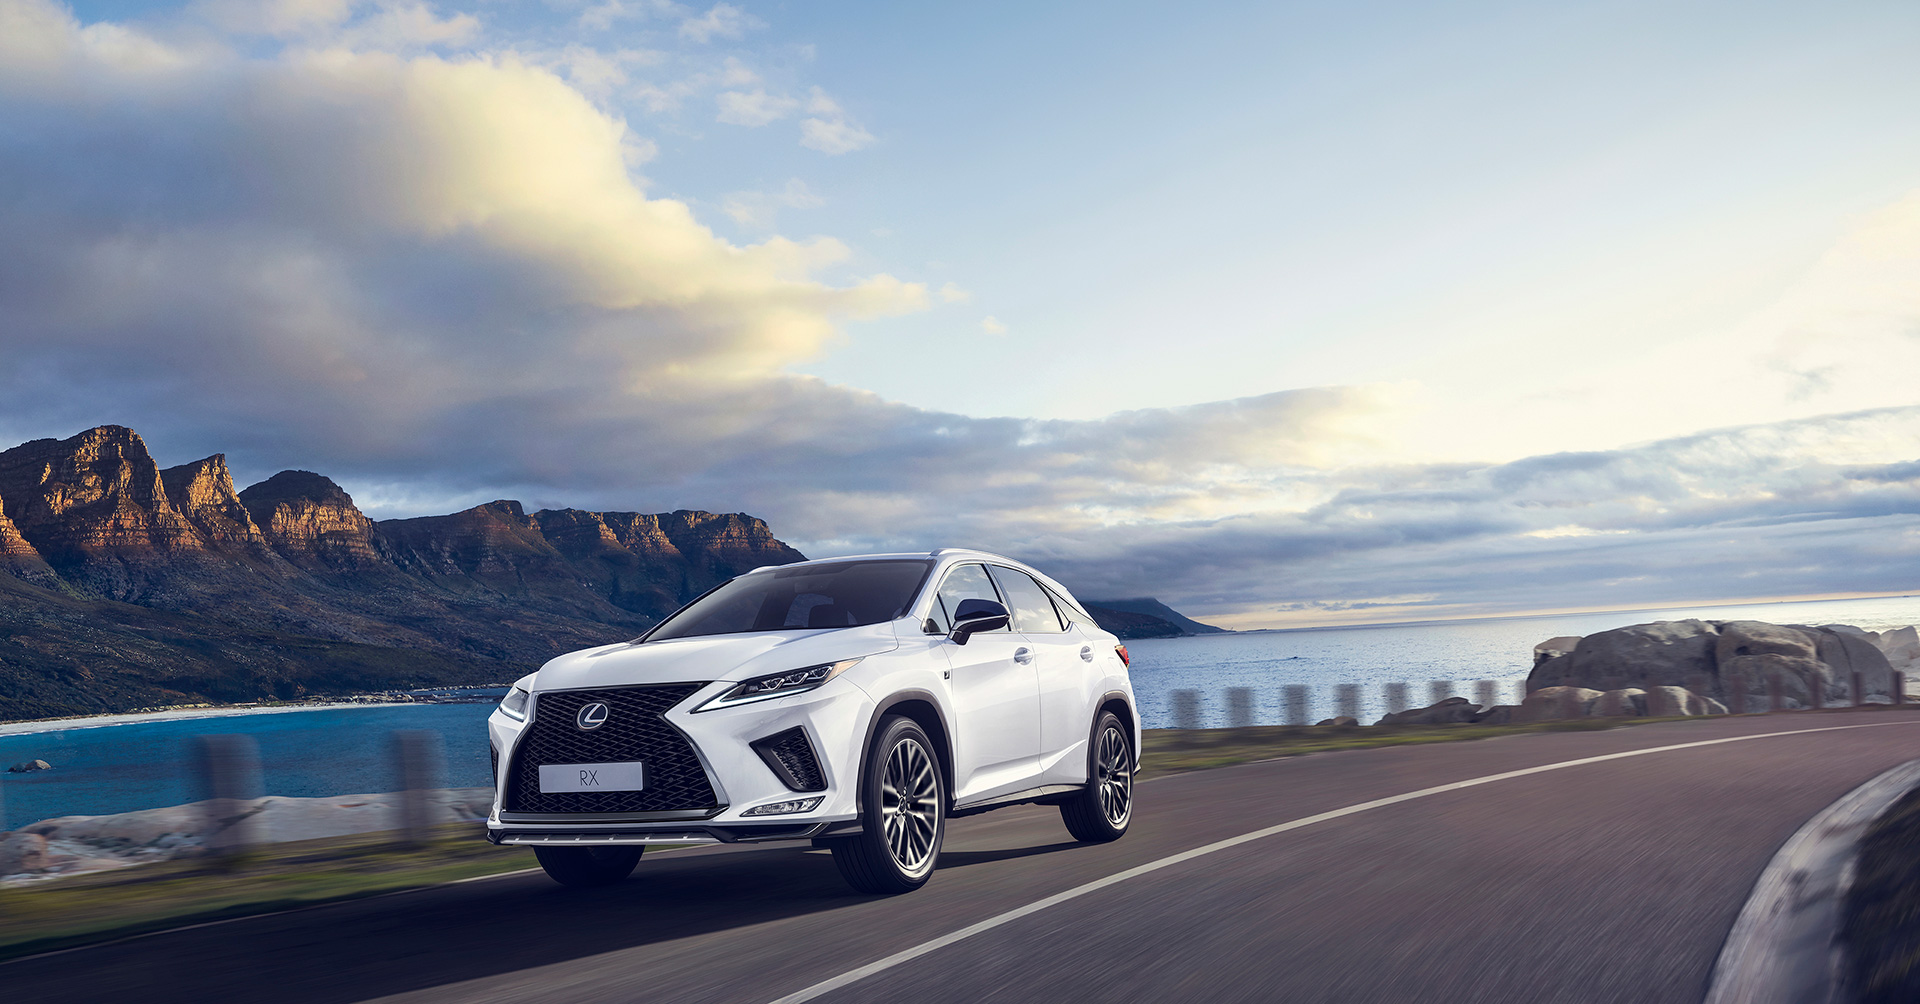 New Lexus RX Makes World DebutThe Pioneer of the Luxury SUV Segment Evolves to New Heights Equipped with the Latest Technology - Image 6